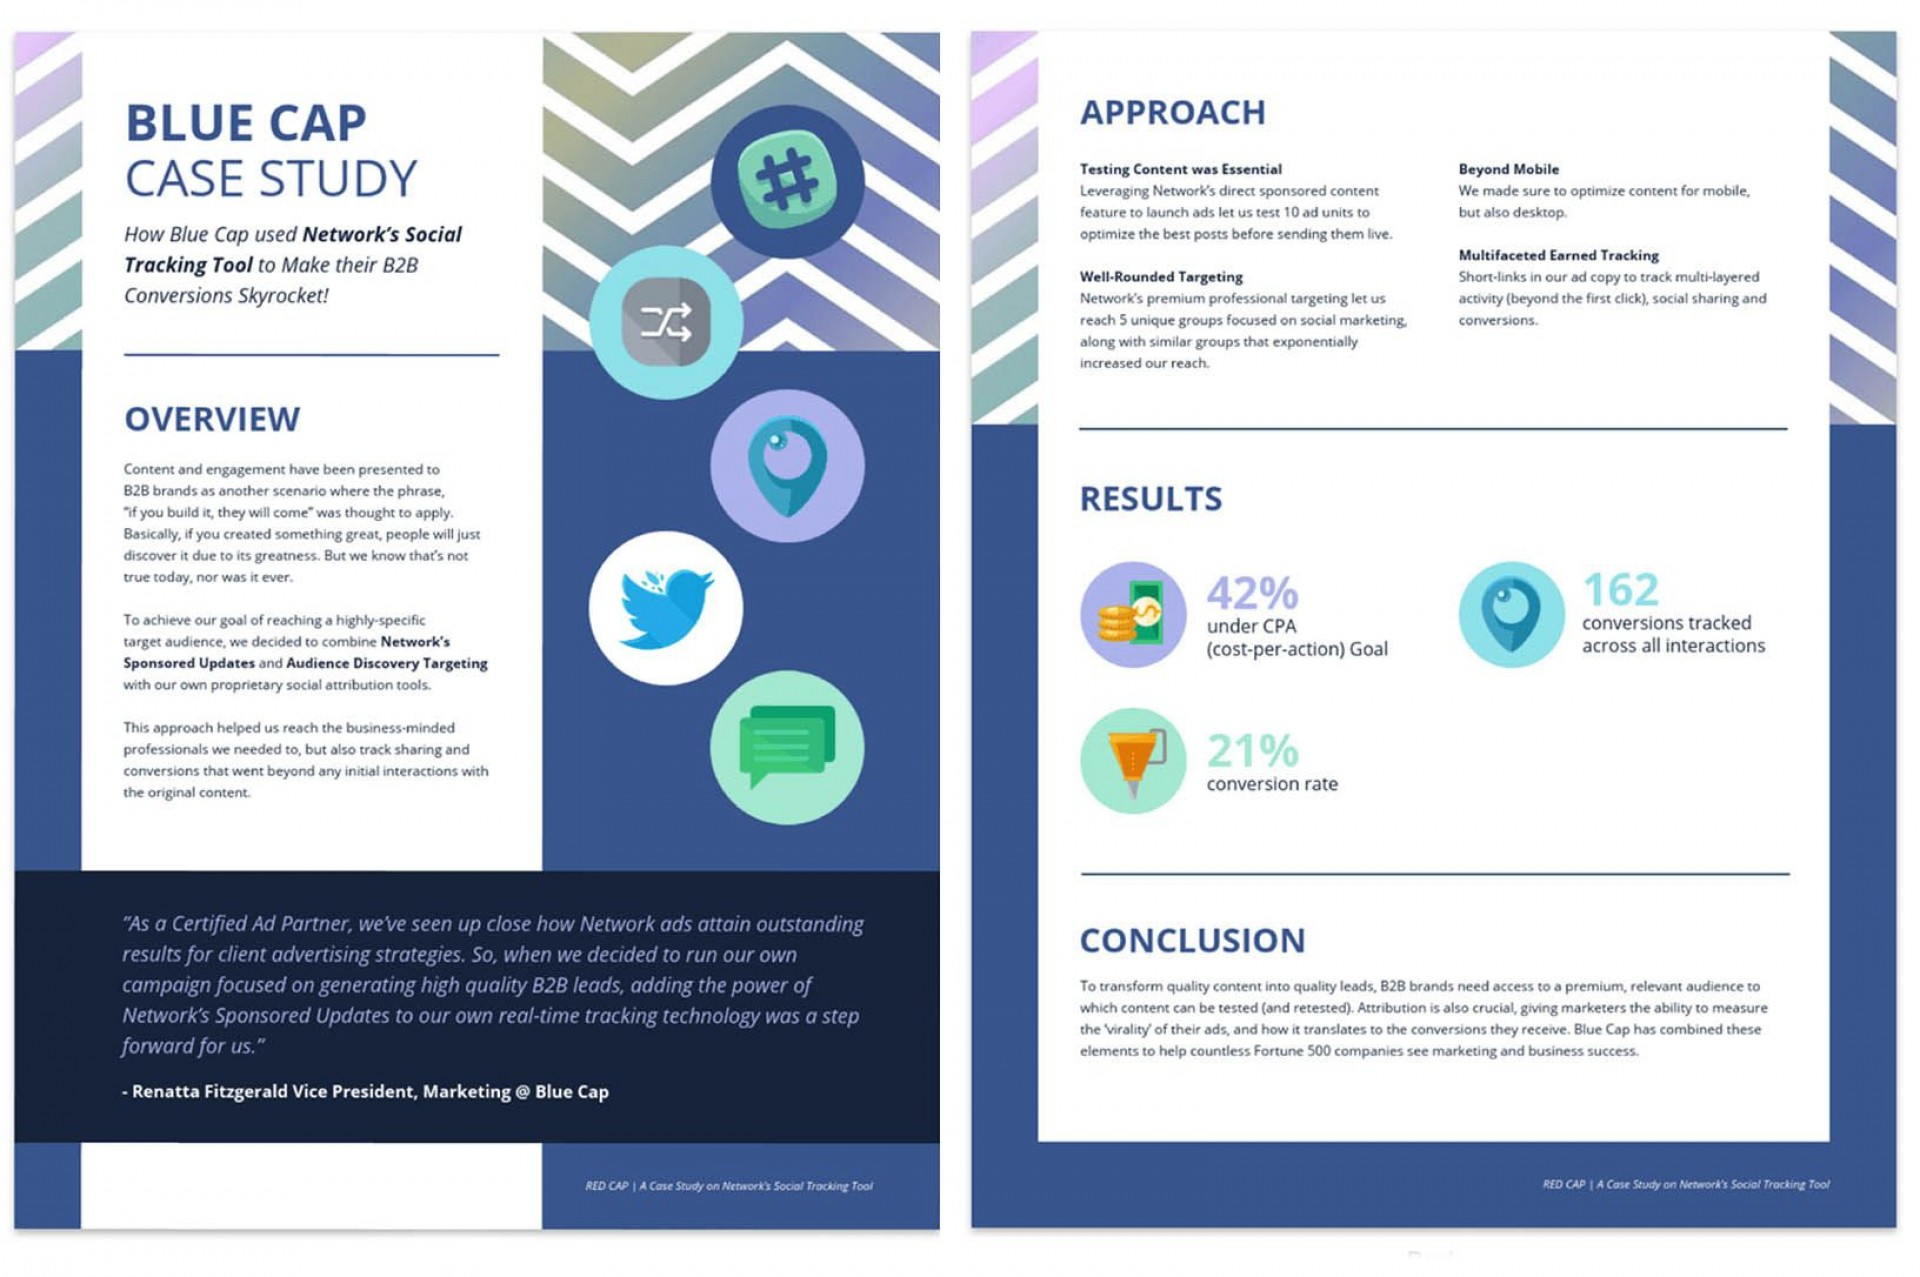 009 Frightening Busines Case Study Template Concept  One Page Download Ppt1920